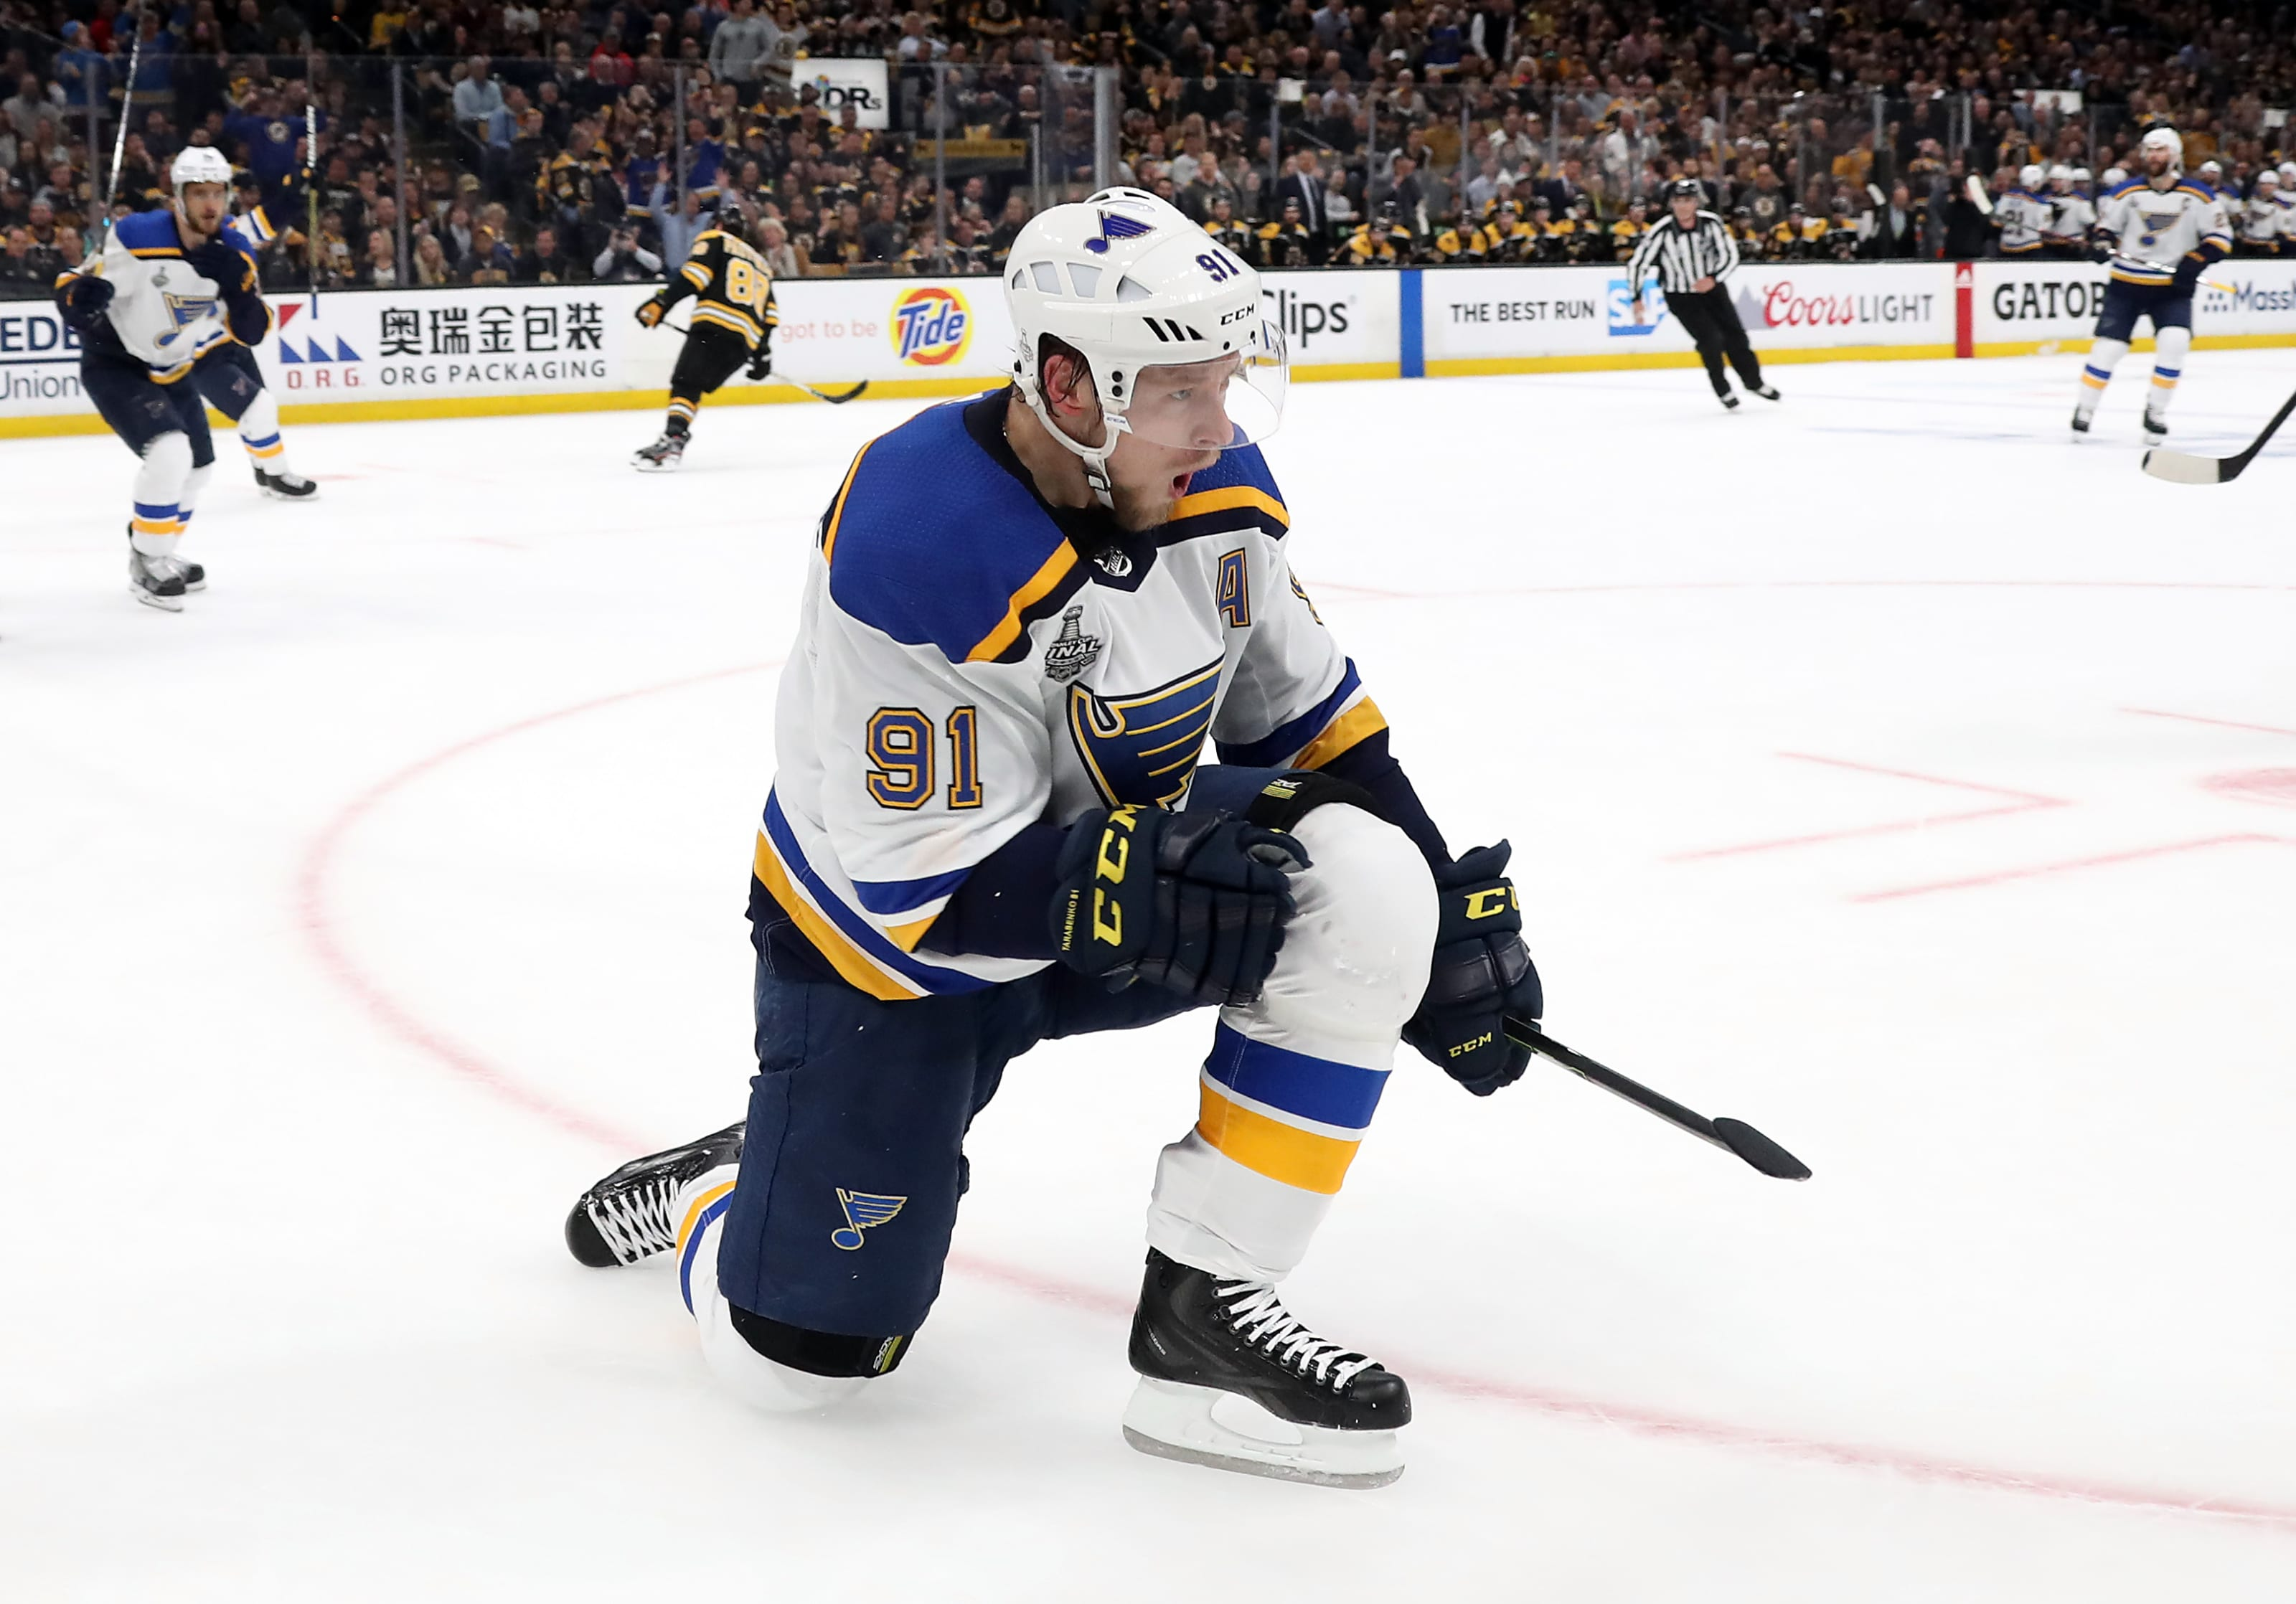 Vladimir Tarasenko #91 of the St. Louis Blues celebrates his first period goal against the Boston Bruins in Game Two of the 2019 NHL Stanley Cup Final.